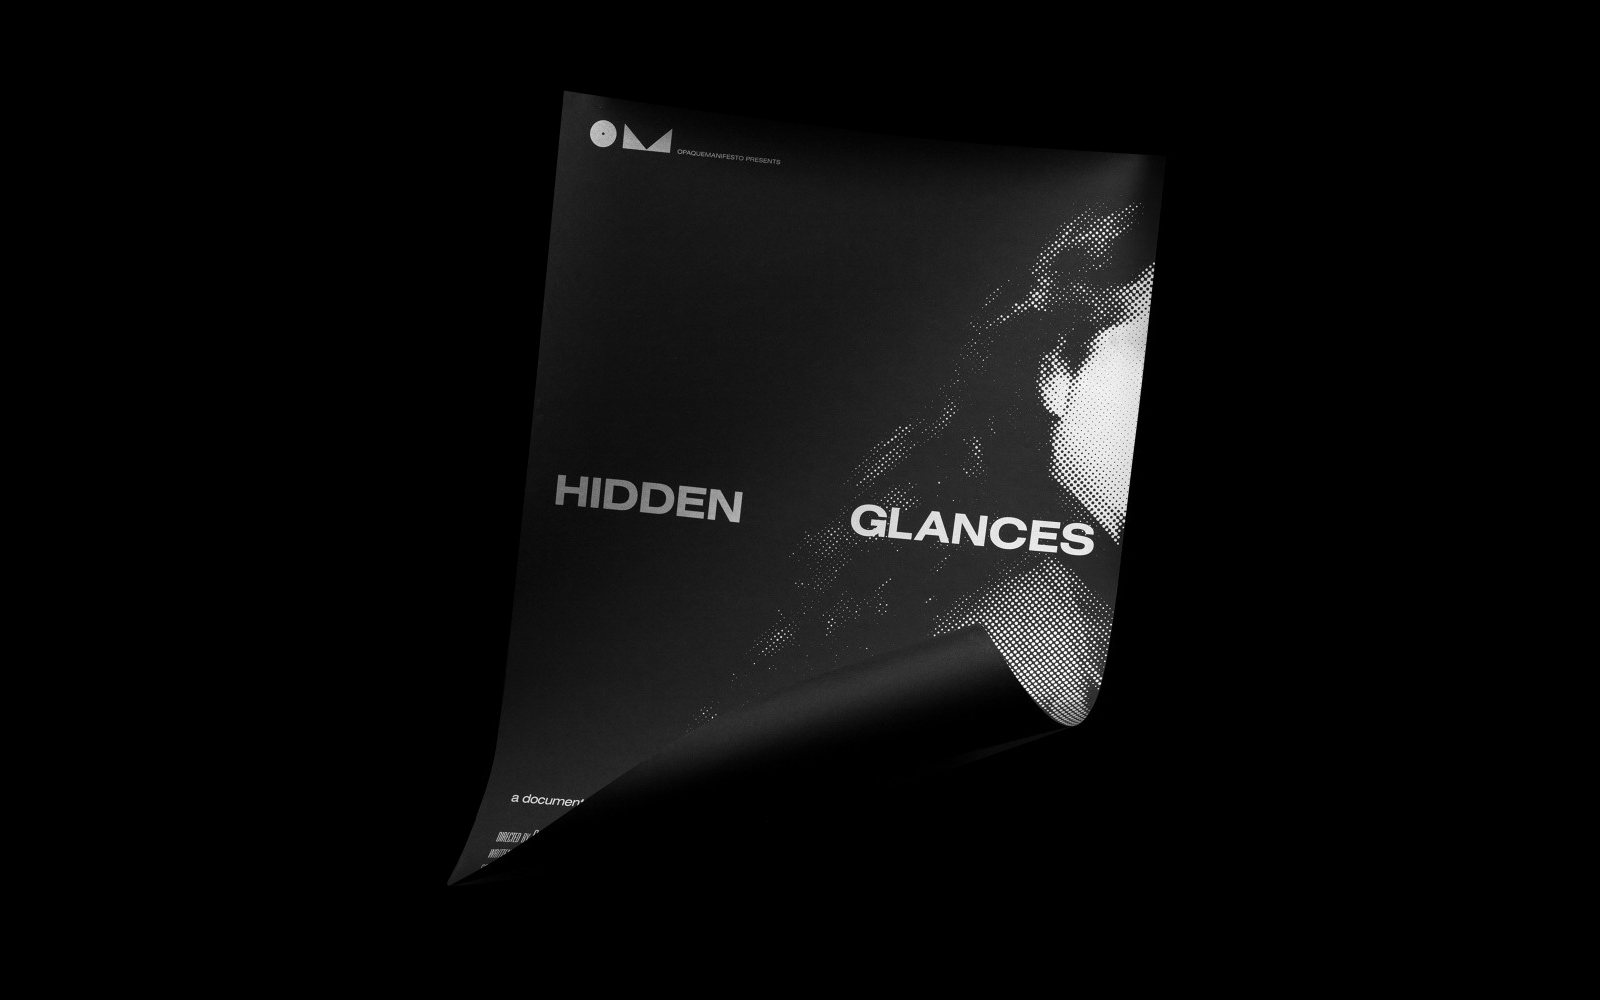 Hidden Glances